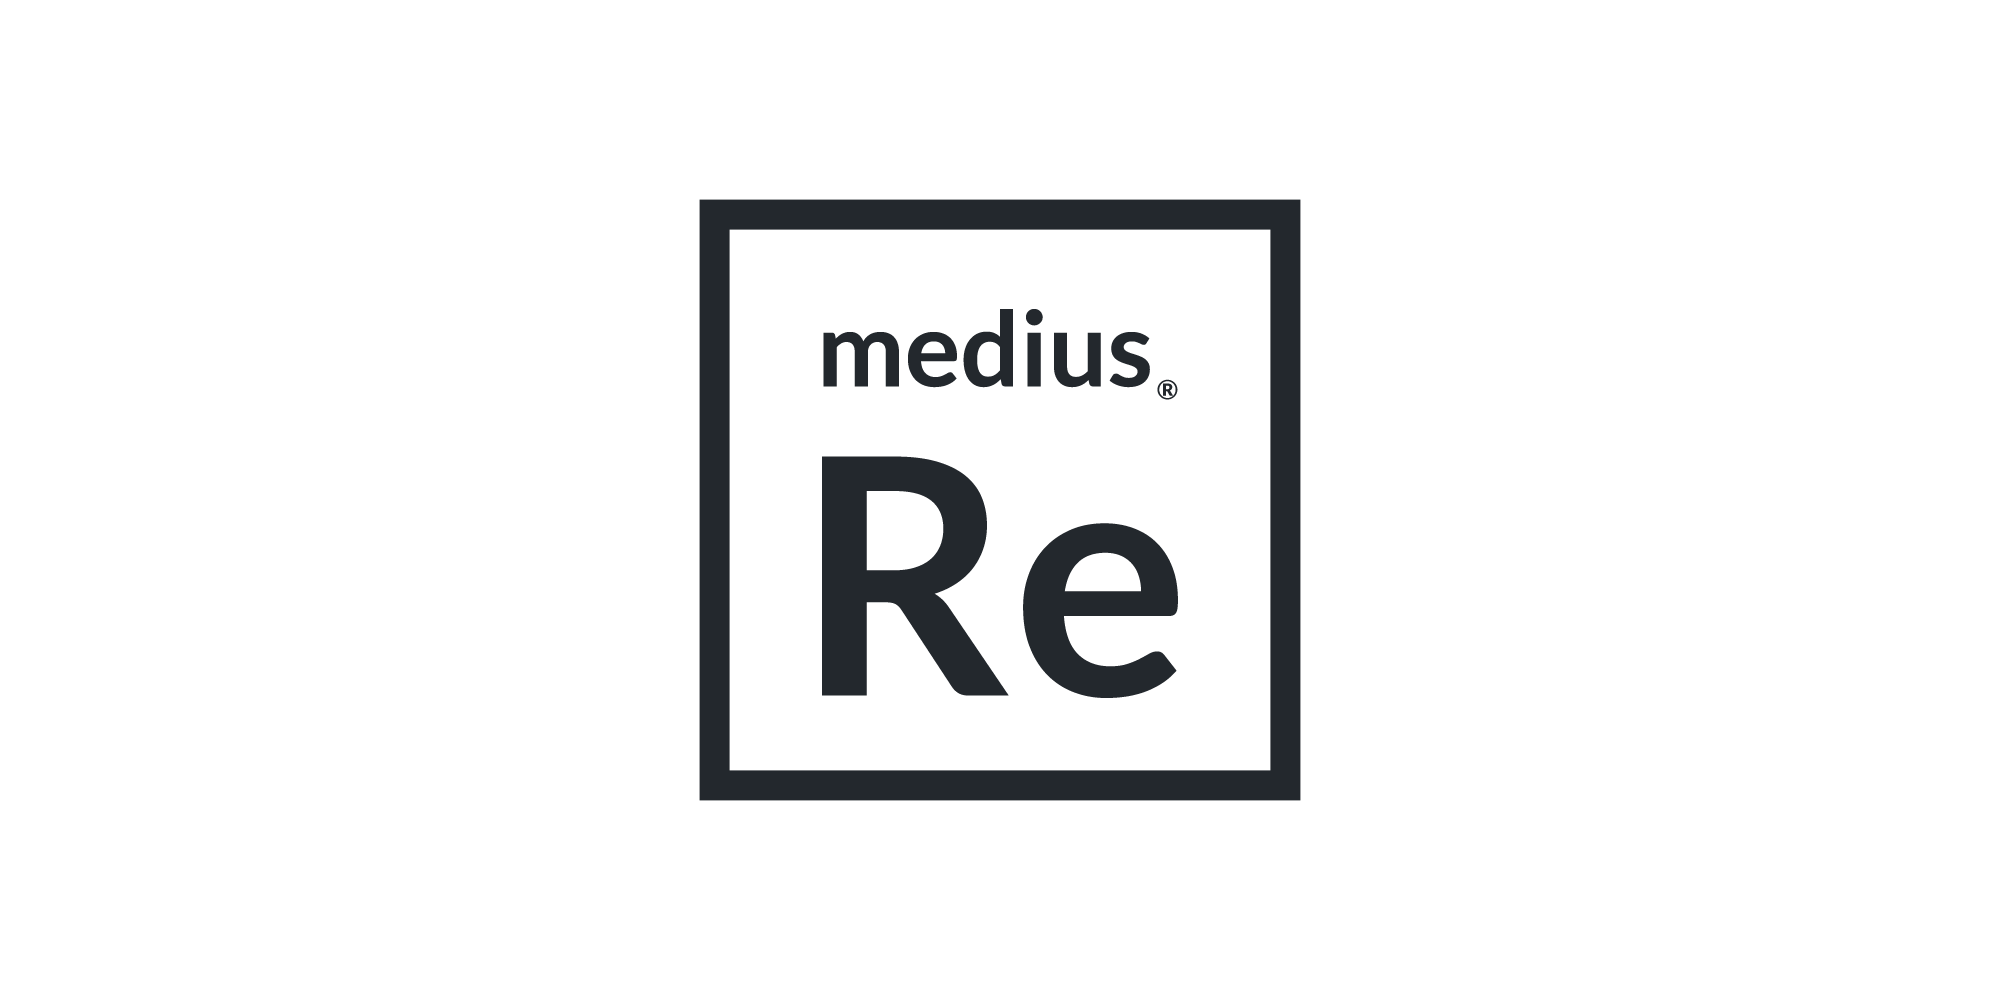 What is Medius.Re?